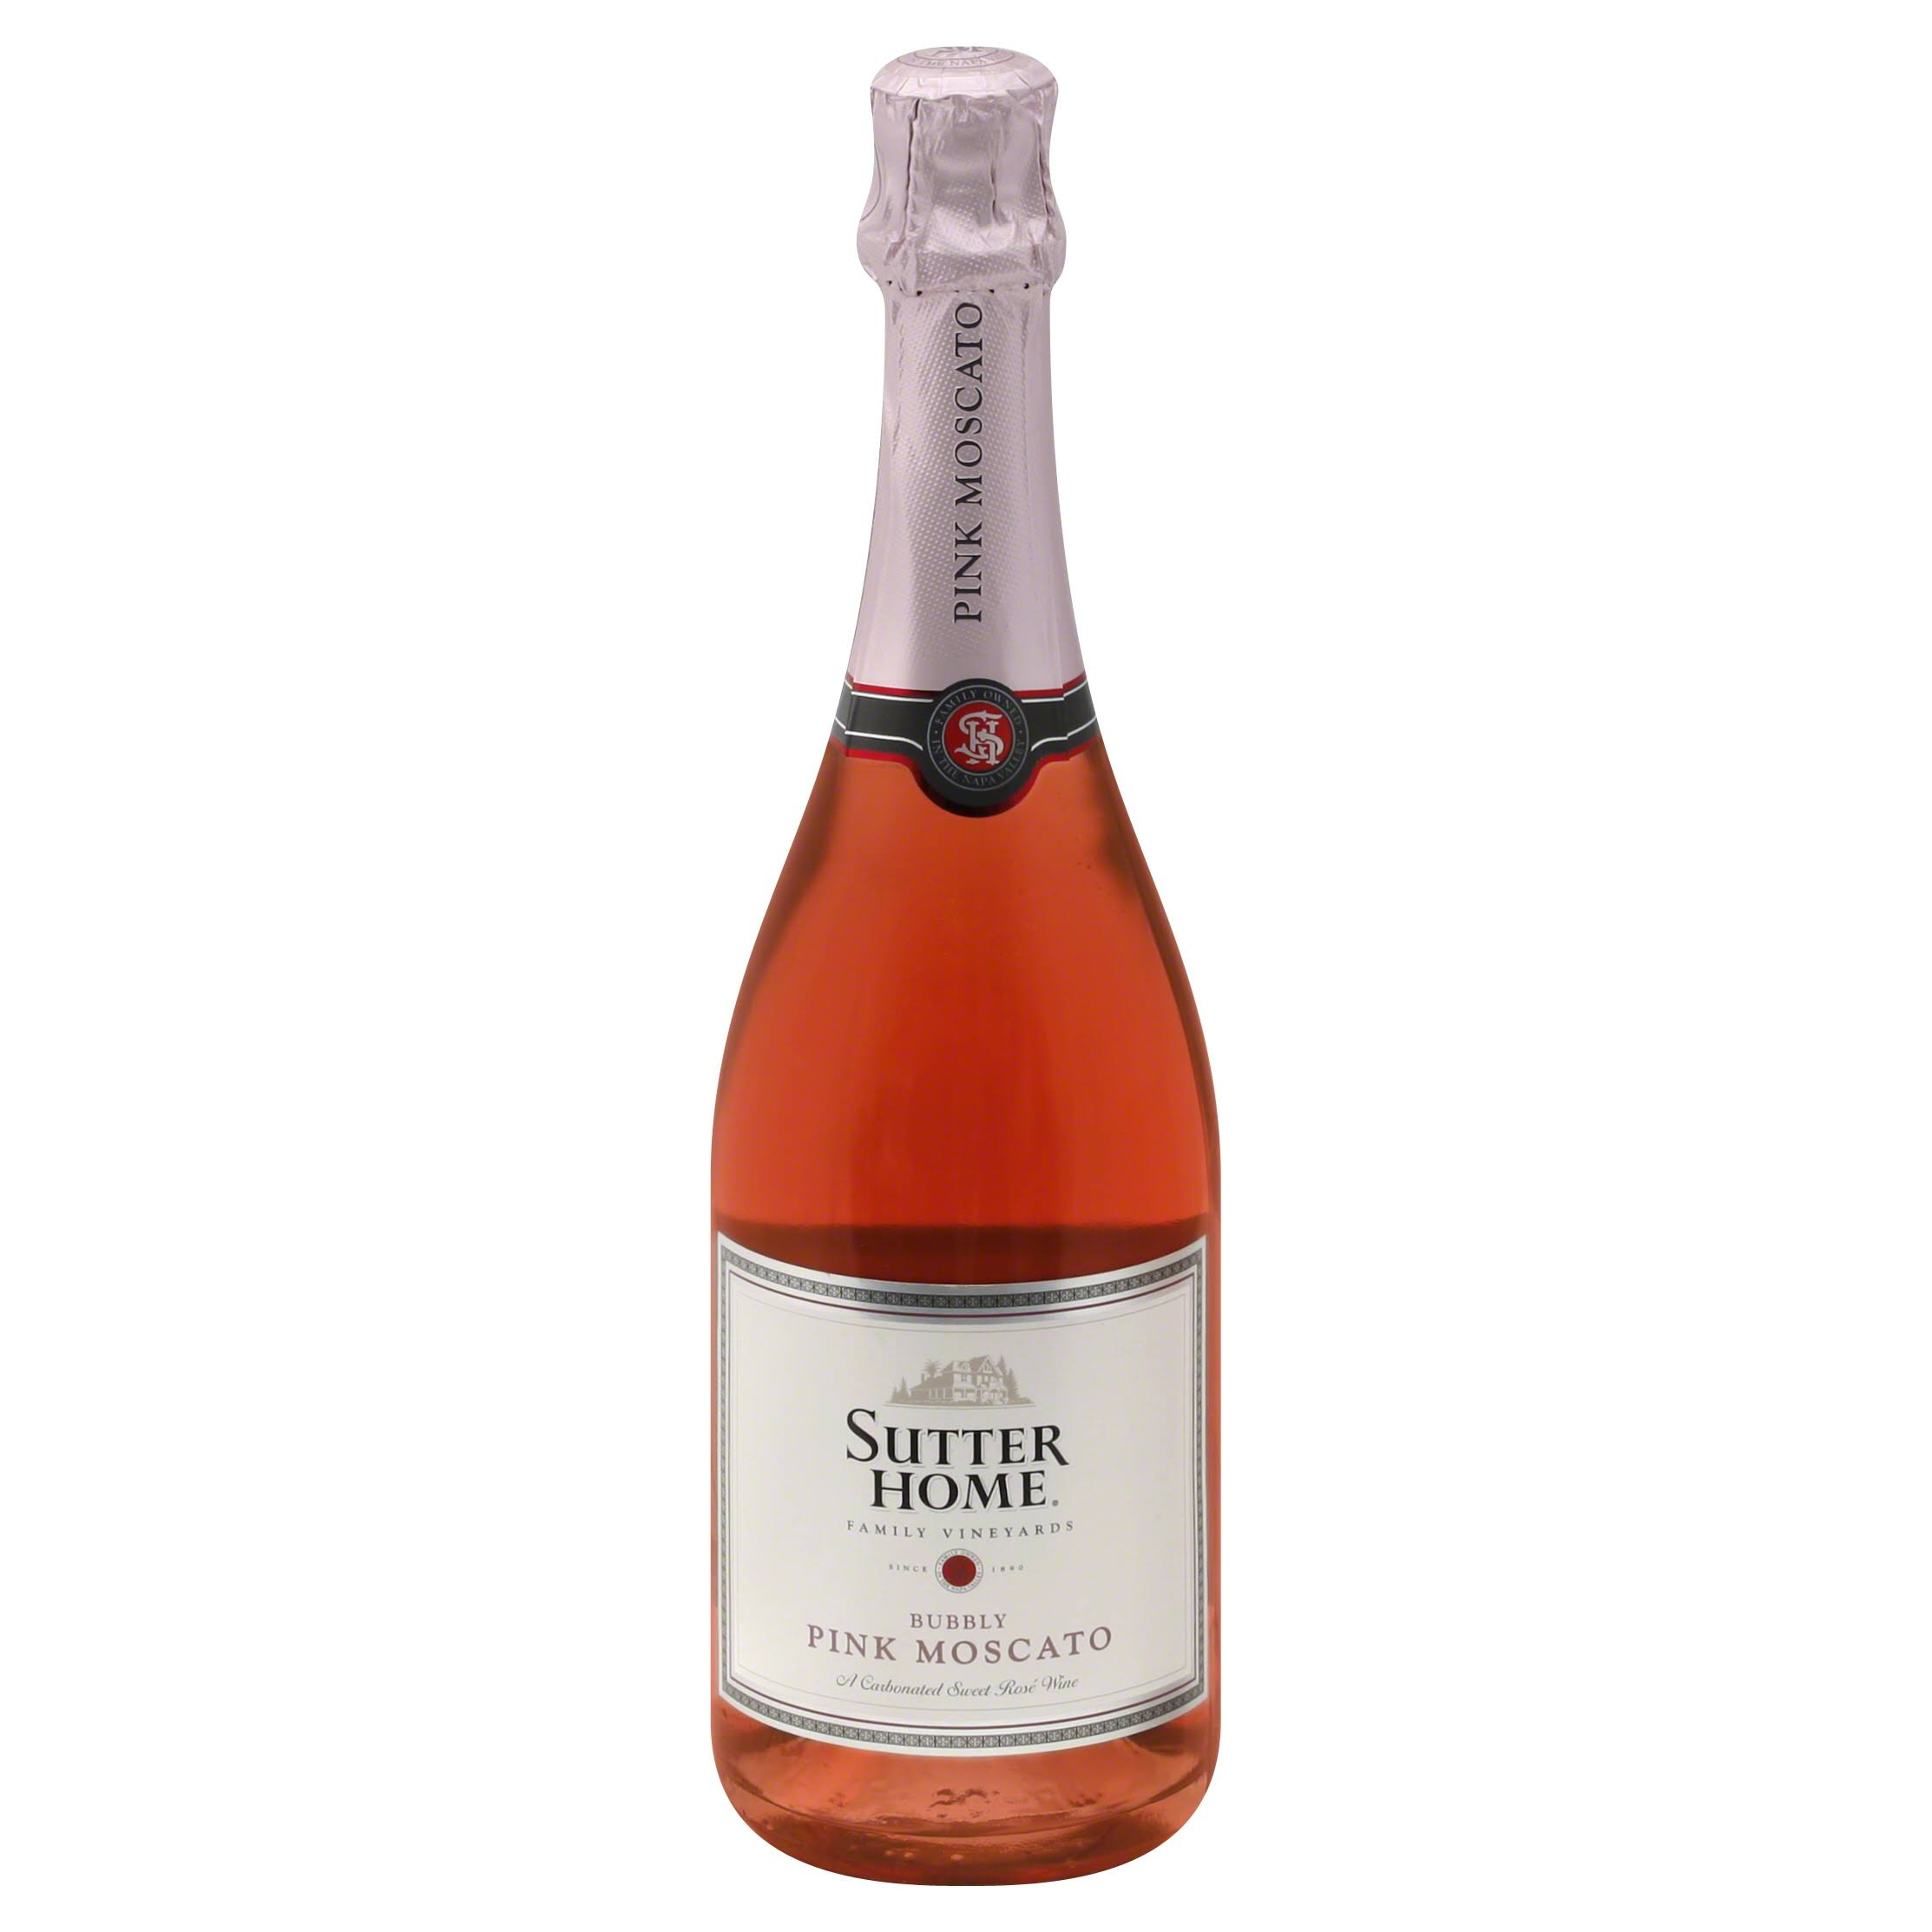 Sutter Home Bubbly Pink Moscato - California, United States